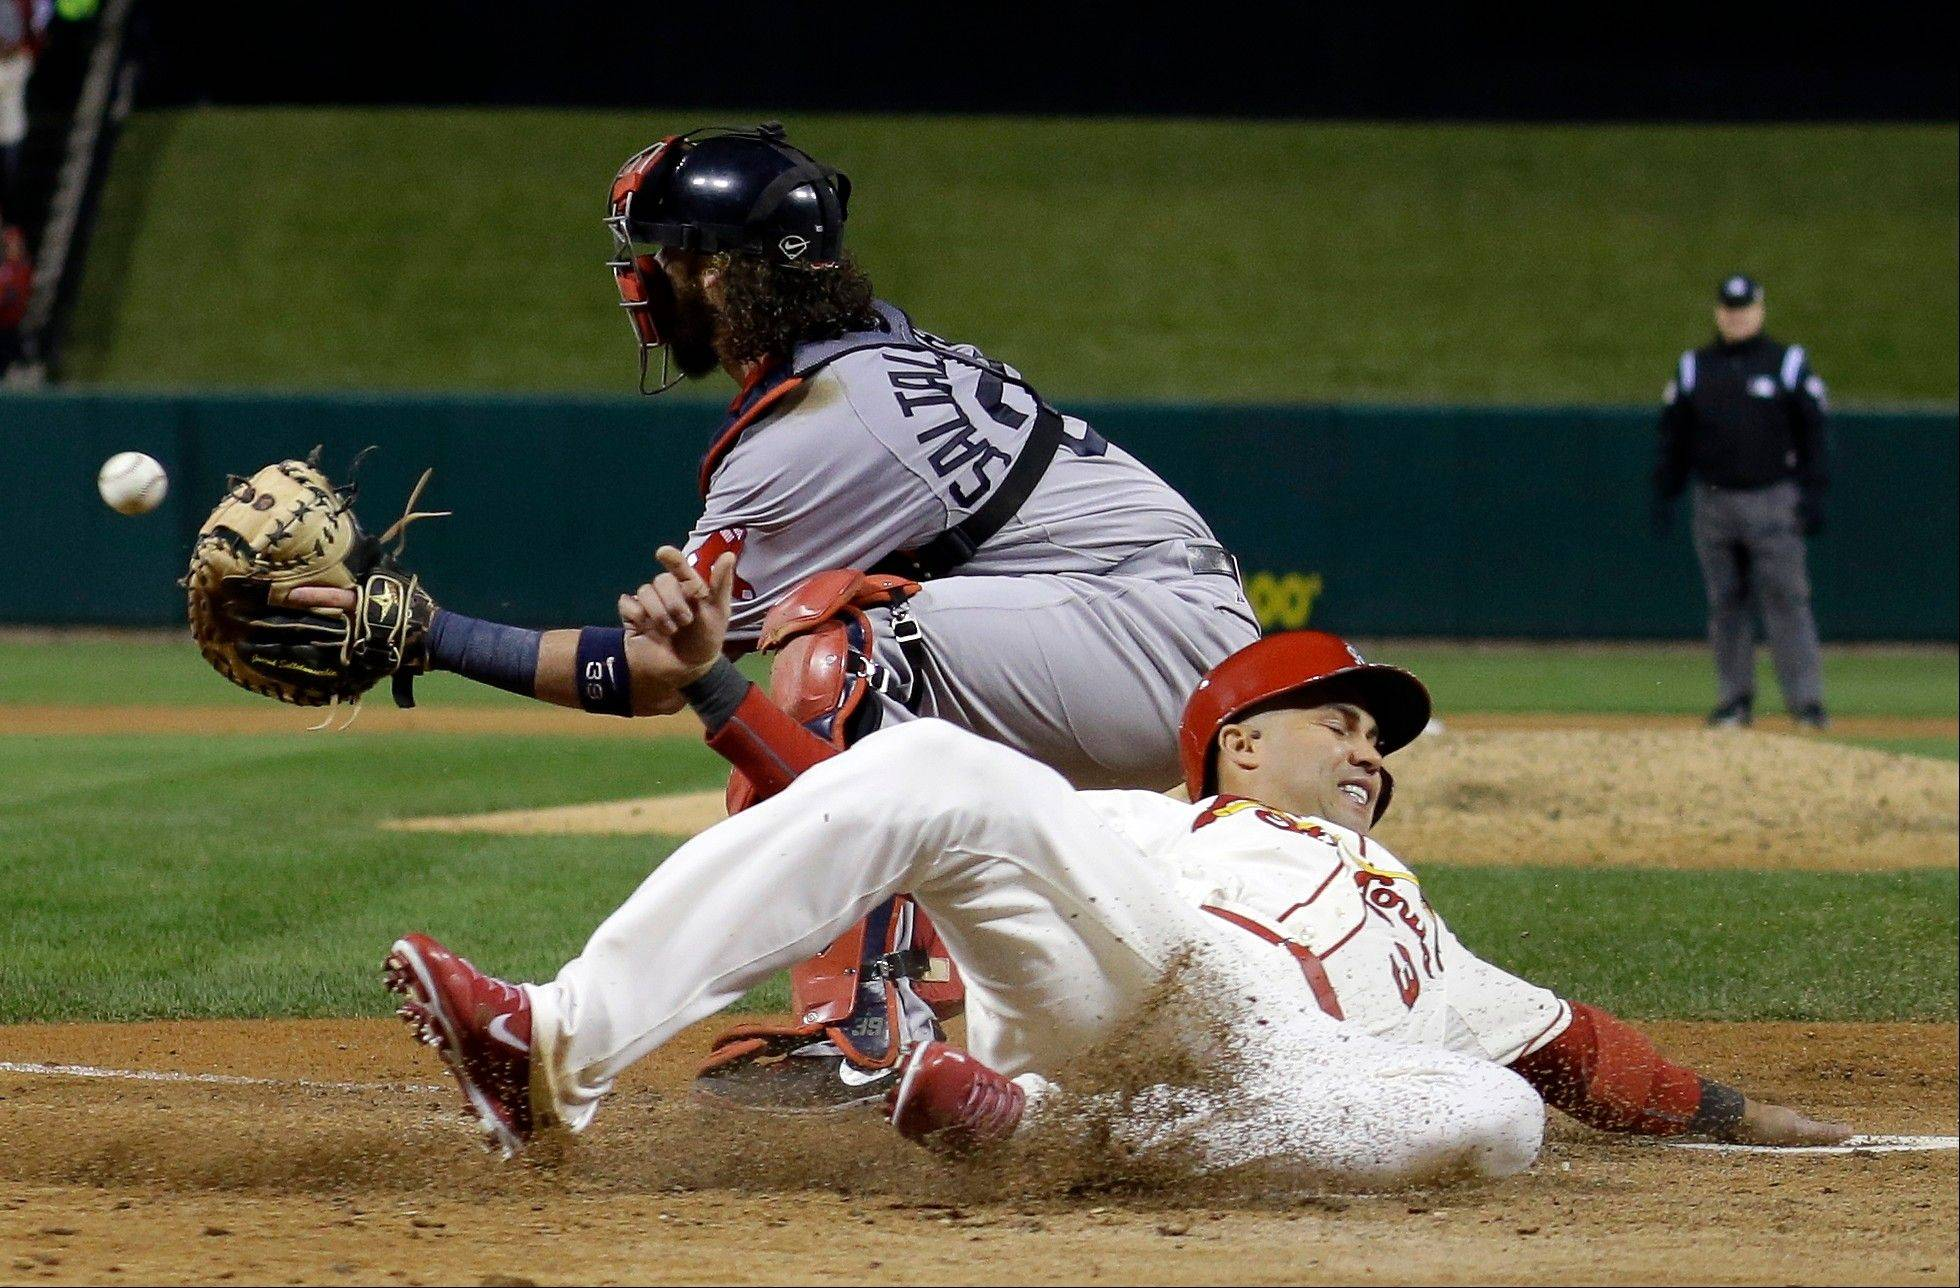 St. Louis Cardinals' Carlos Beltran slides safely past Boston Red Sox catcher Jarrod Saltalamacchia during the seventh inning.